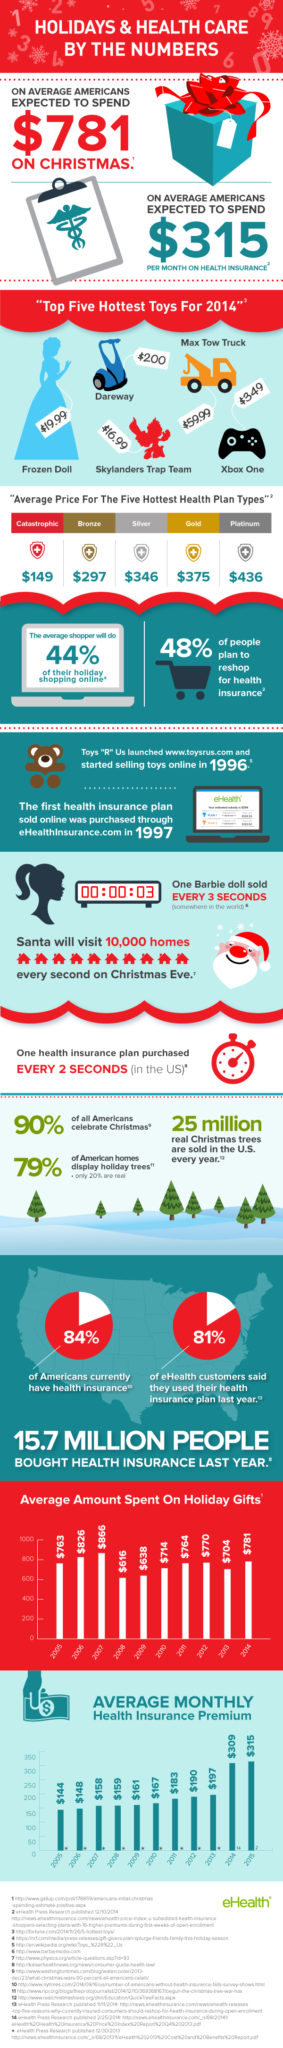 Holiday Infographic Health Care Insurance Christmas